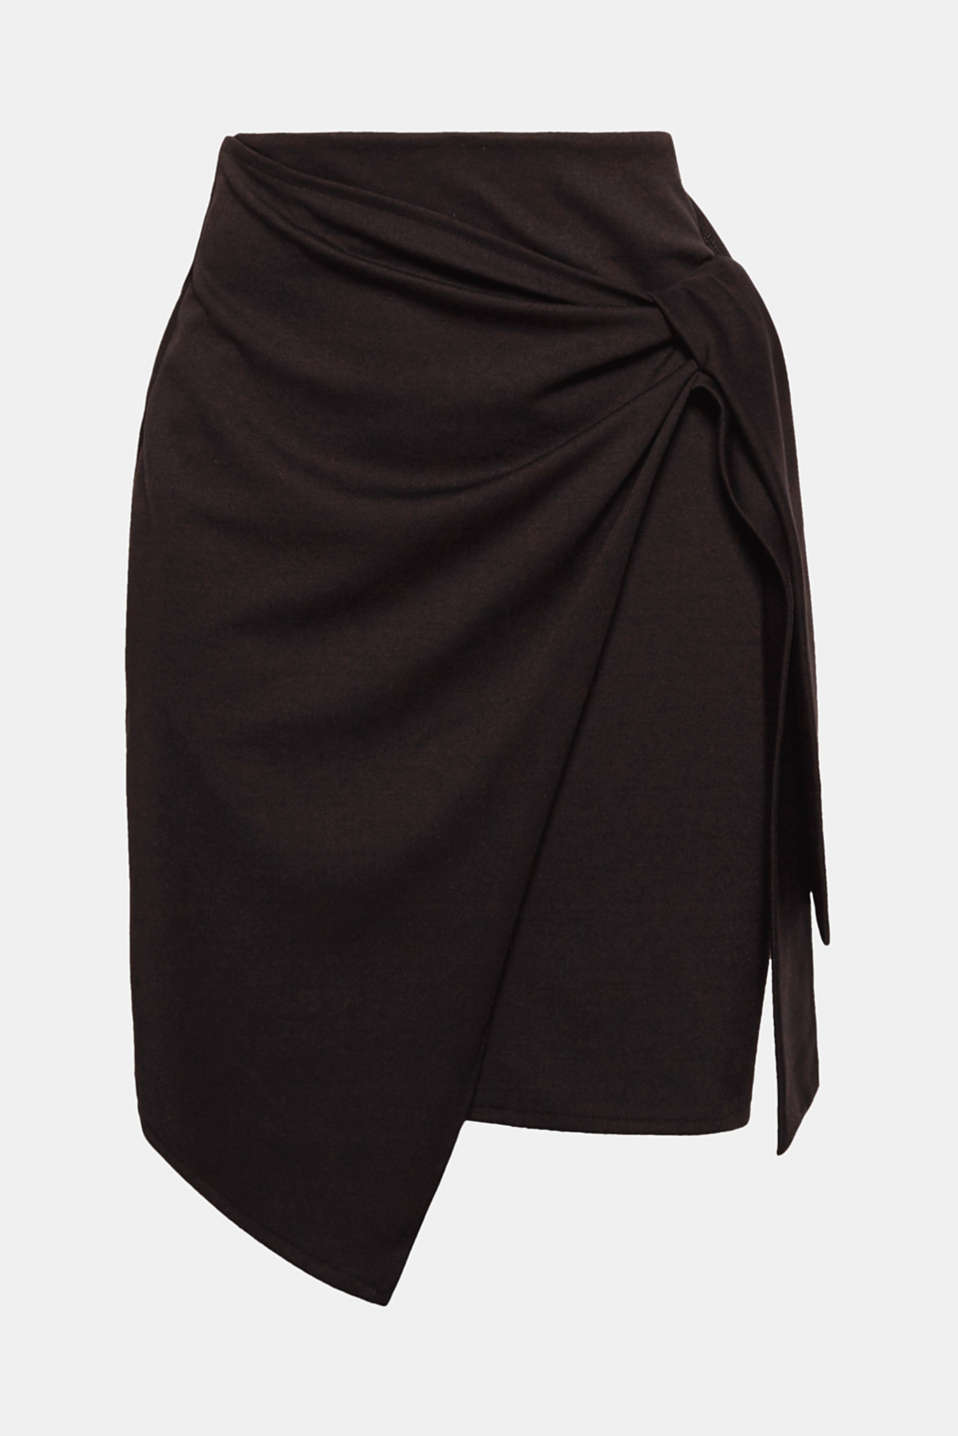 Can be worn for daytime and evening looks: This feminine jersey skirt is defined by its modern wrap-over look and smooth jersey fabric.